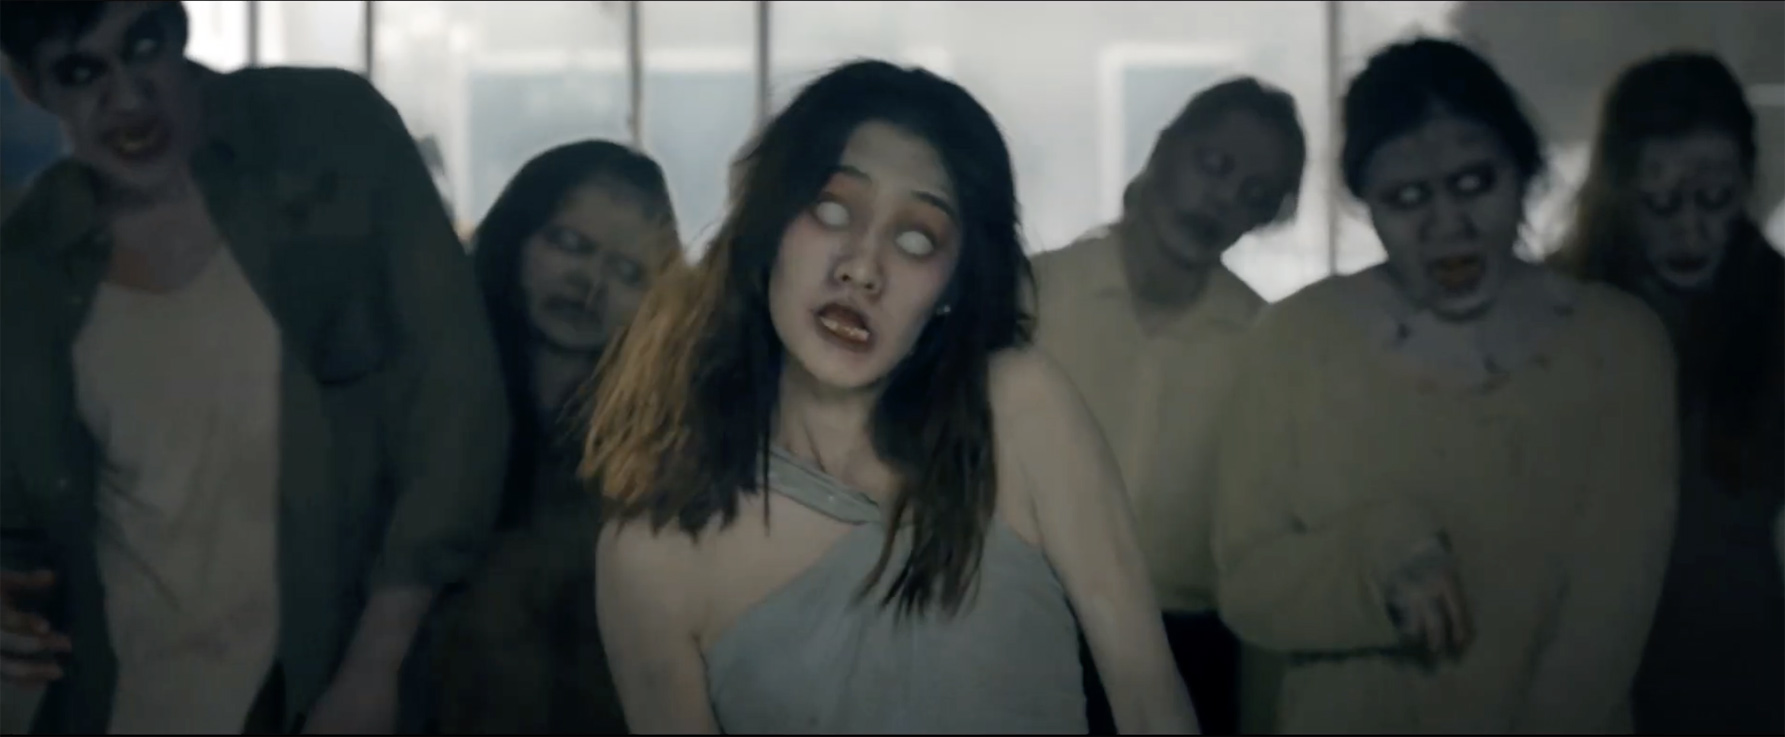 A zombie Walking Dead apocalypse is halted by beauty supplement brand Chame in this new campaign out of GREYnJ UNITED Bangkok